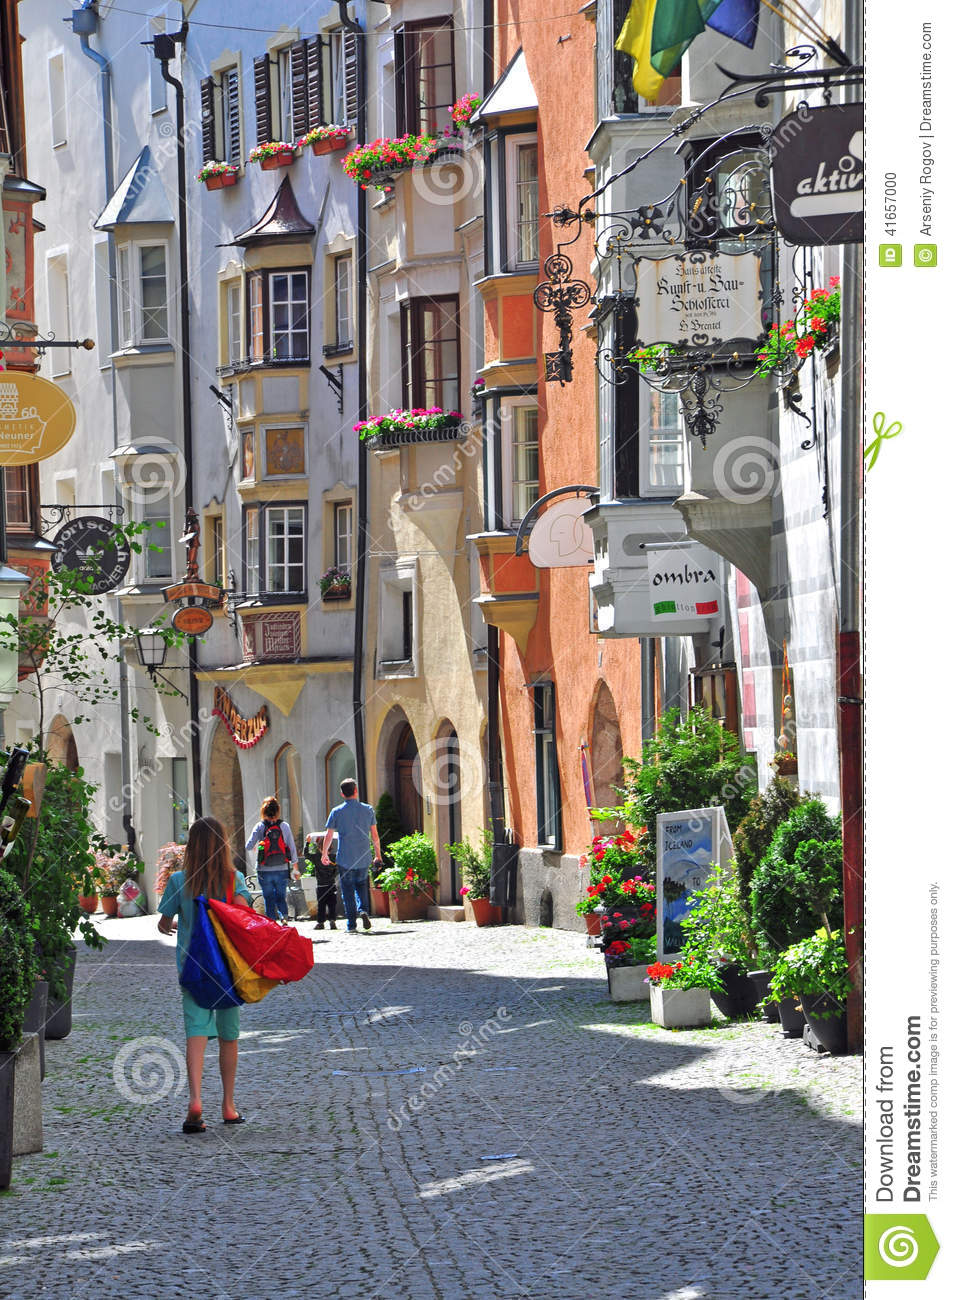 View of a shopping street in austrian city